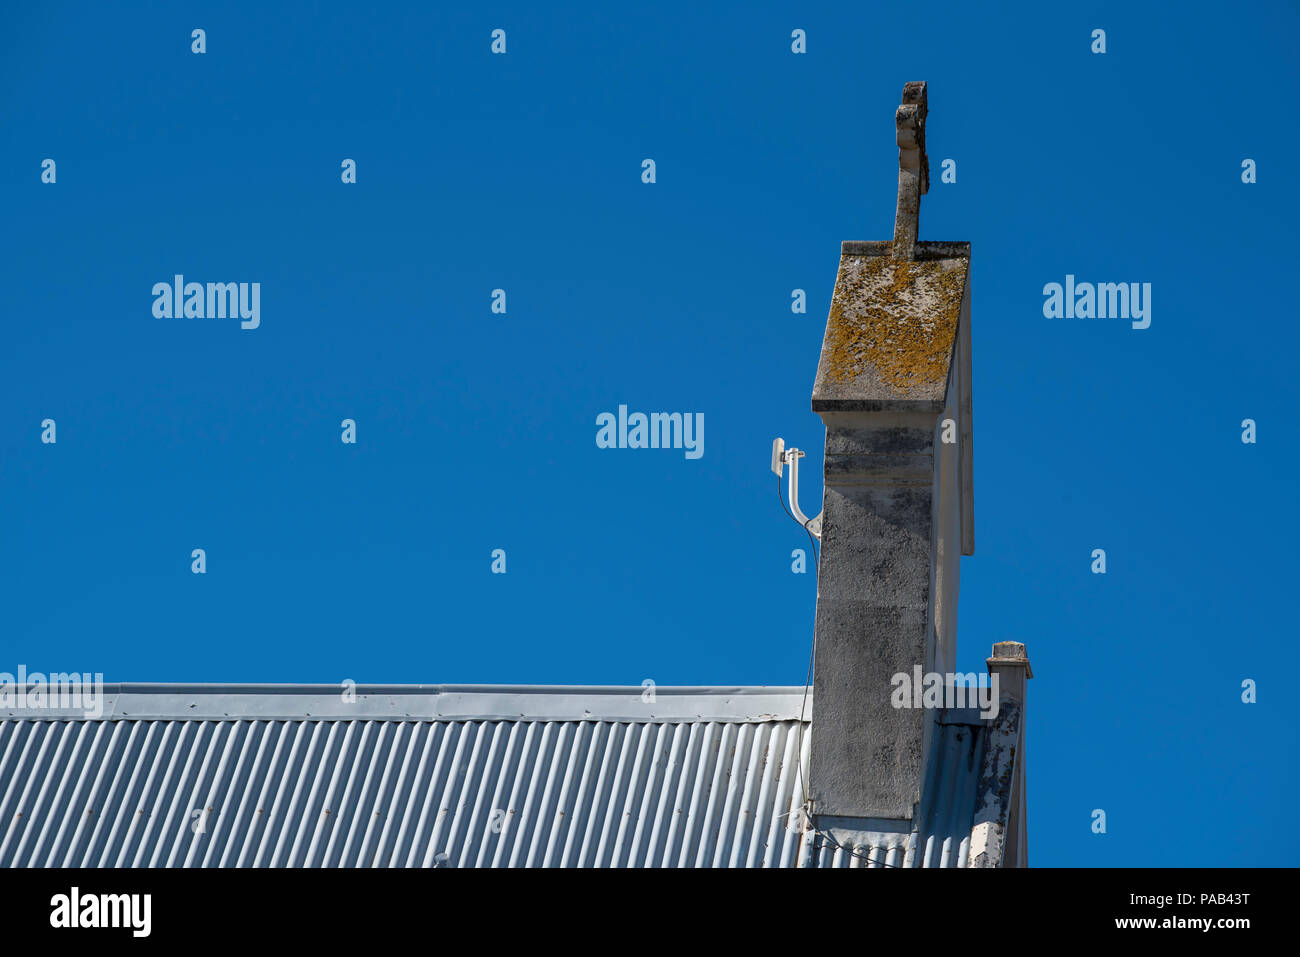 A wireless Internet receiver attached to the rear of a bell gable, espadaña espadanya, clocher-mur or campanile a vela on a church roof in Australia - Stock Image